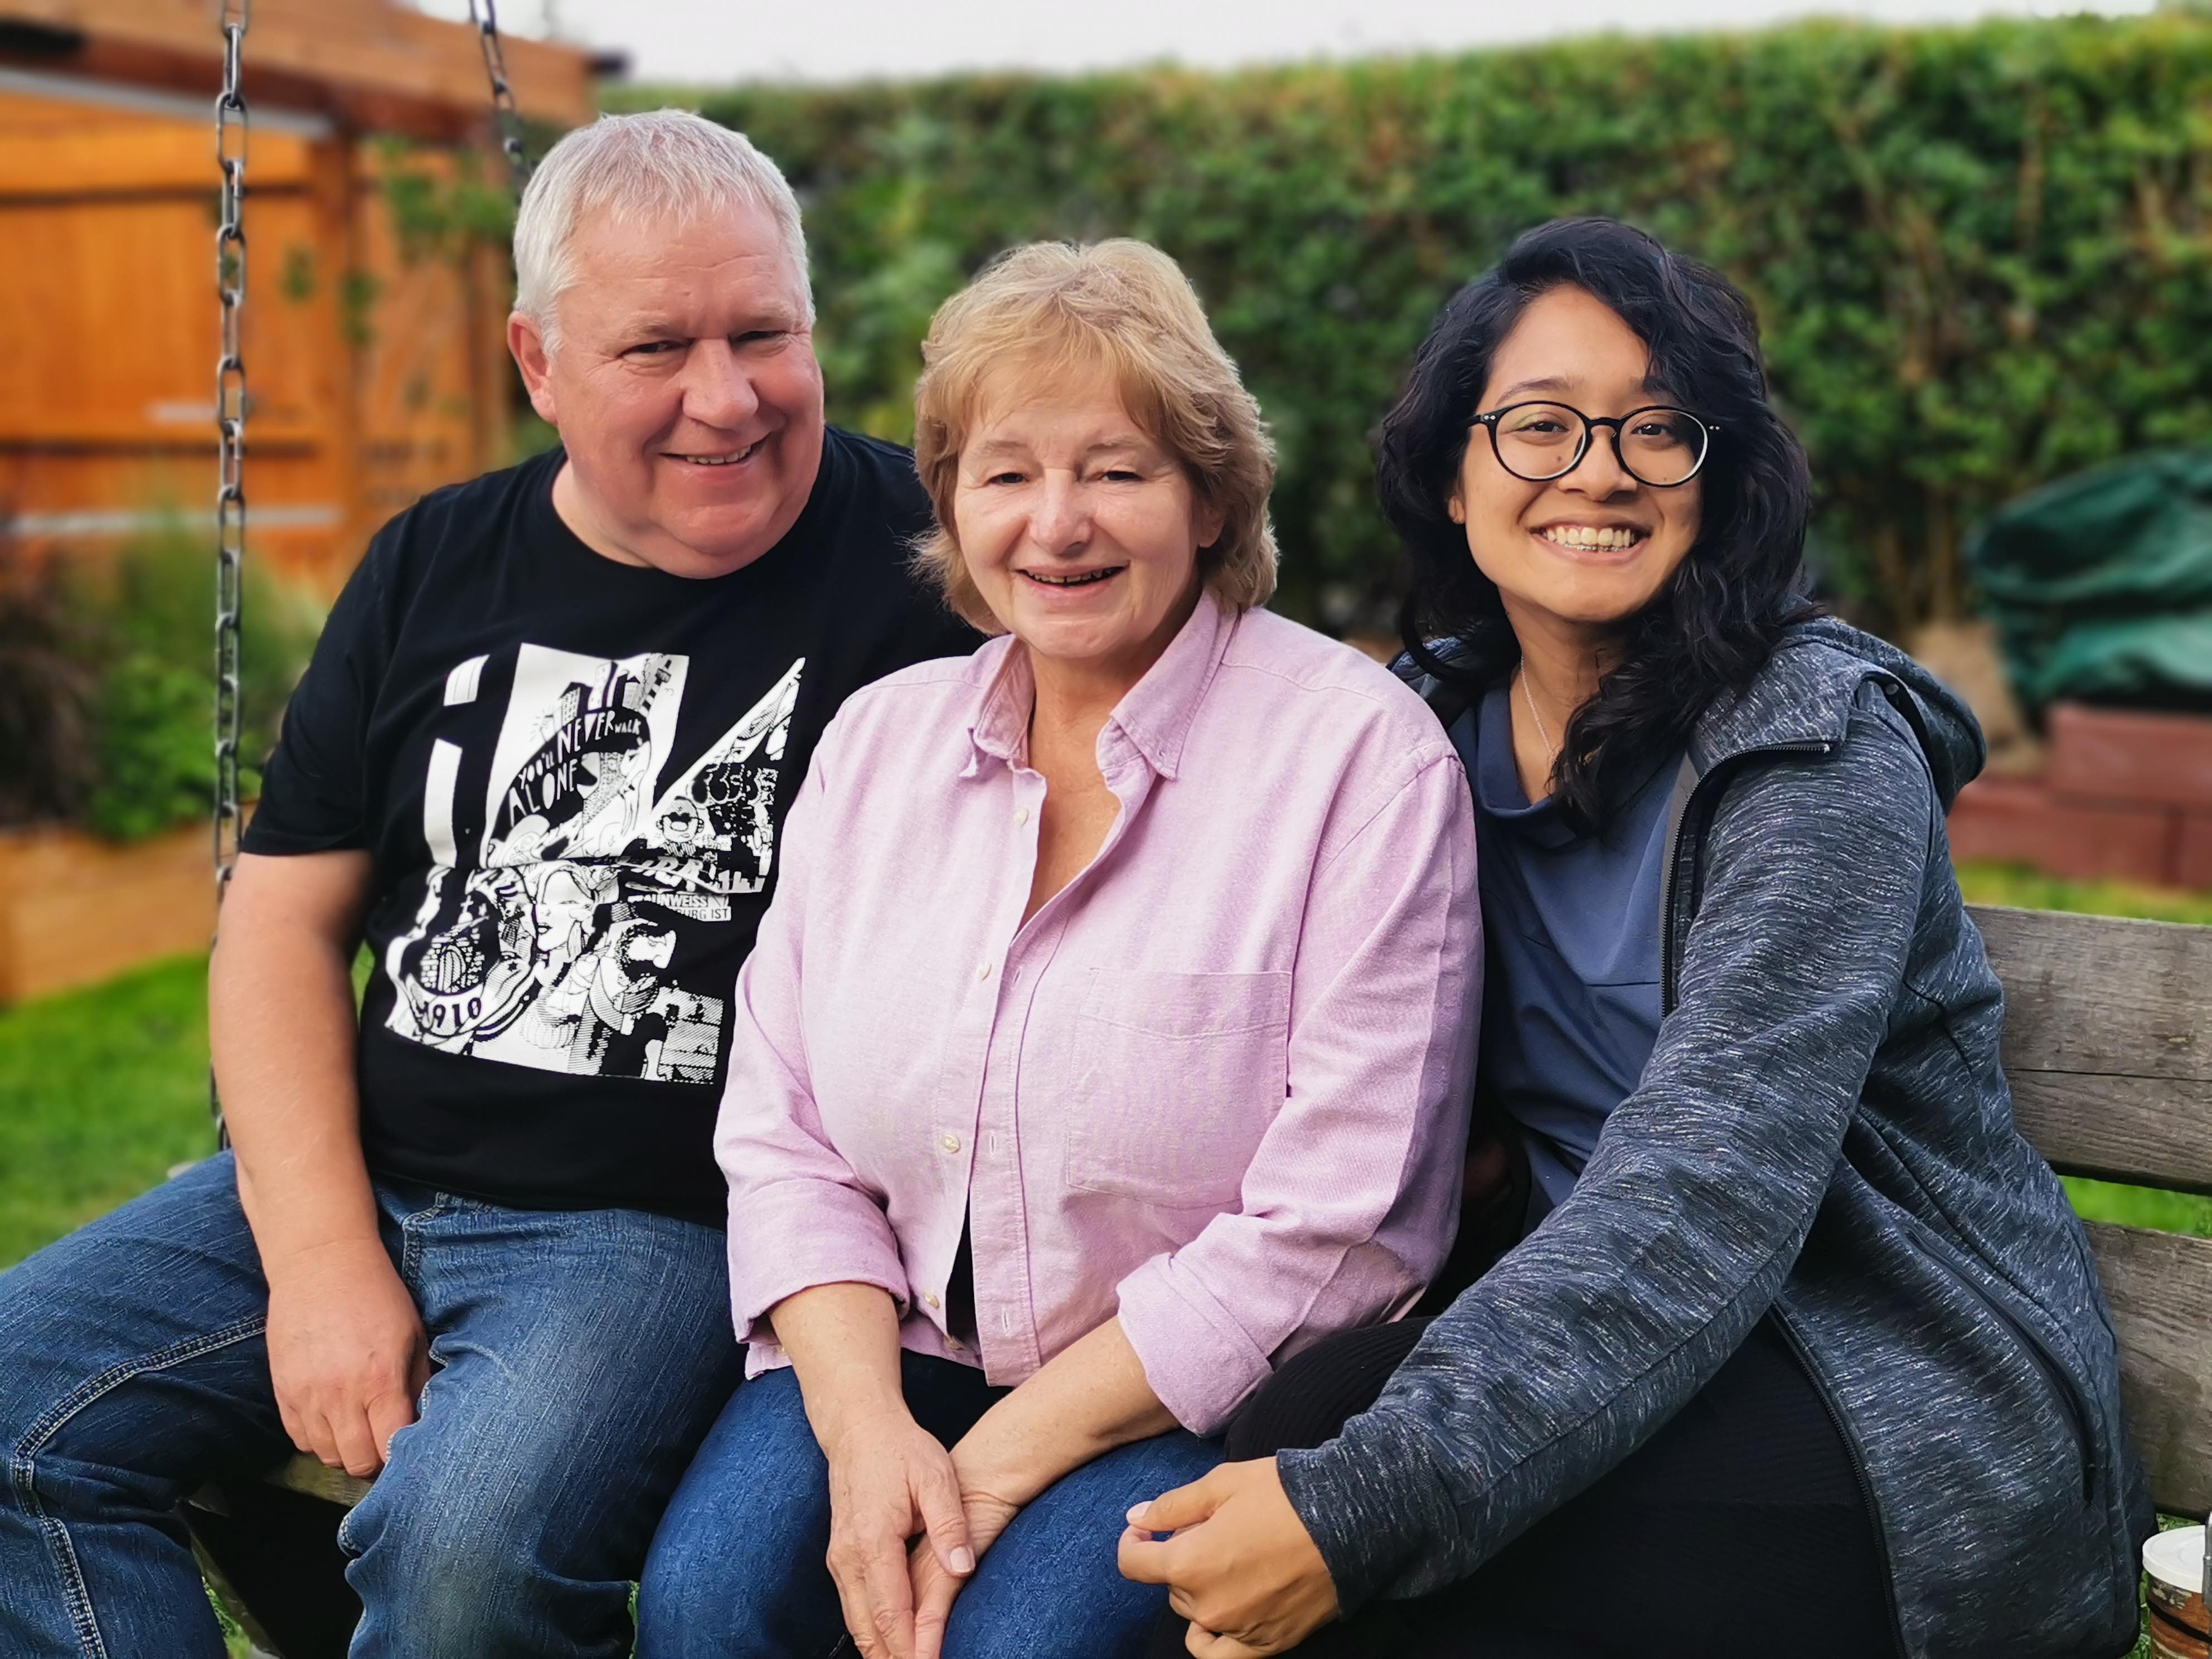 I met Marcel's father and stepmother in Germany for the first time in July 2019.